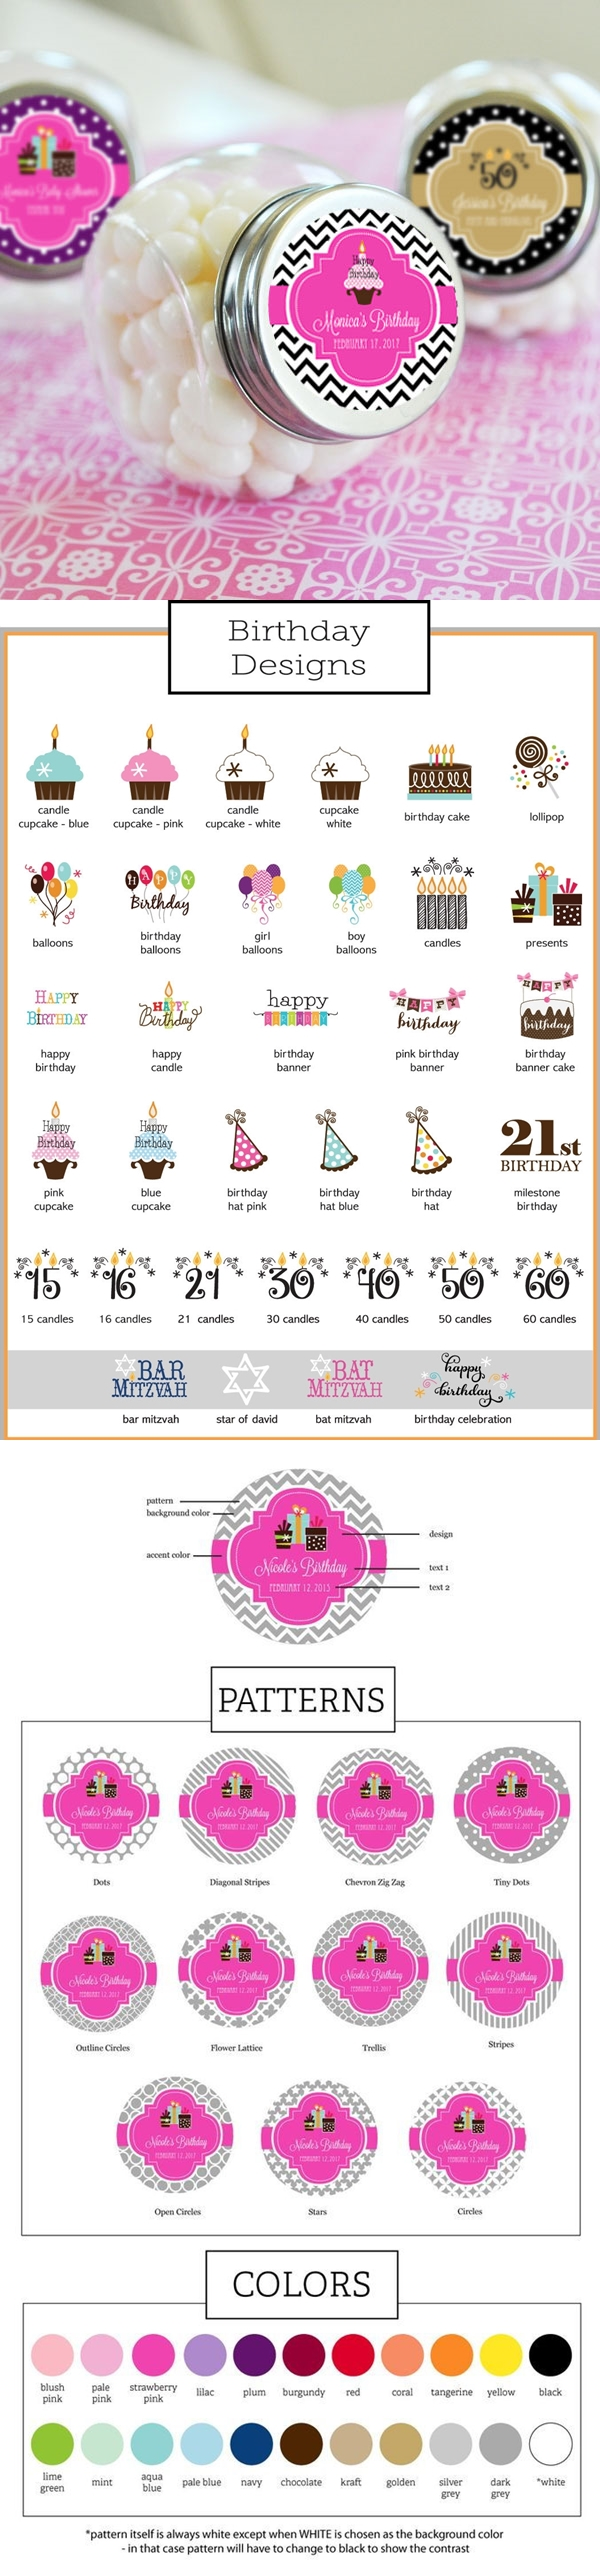 Event Blossom Personalized Birthday Candy Jars (34 Designs)